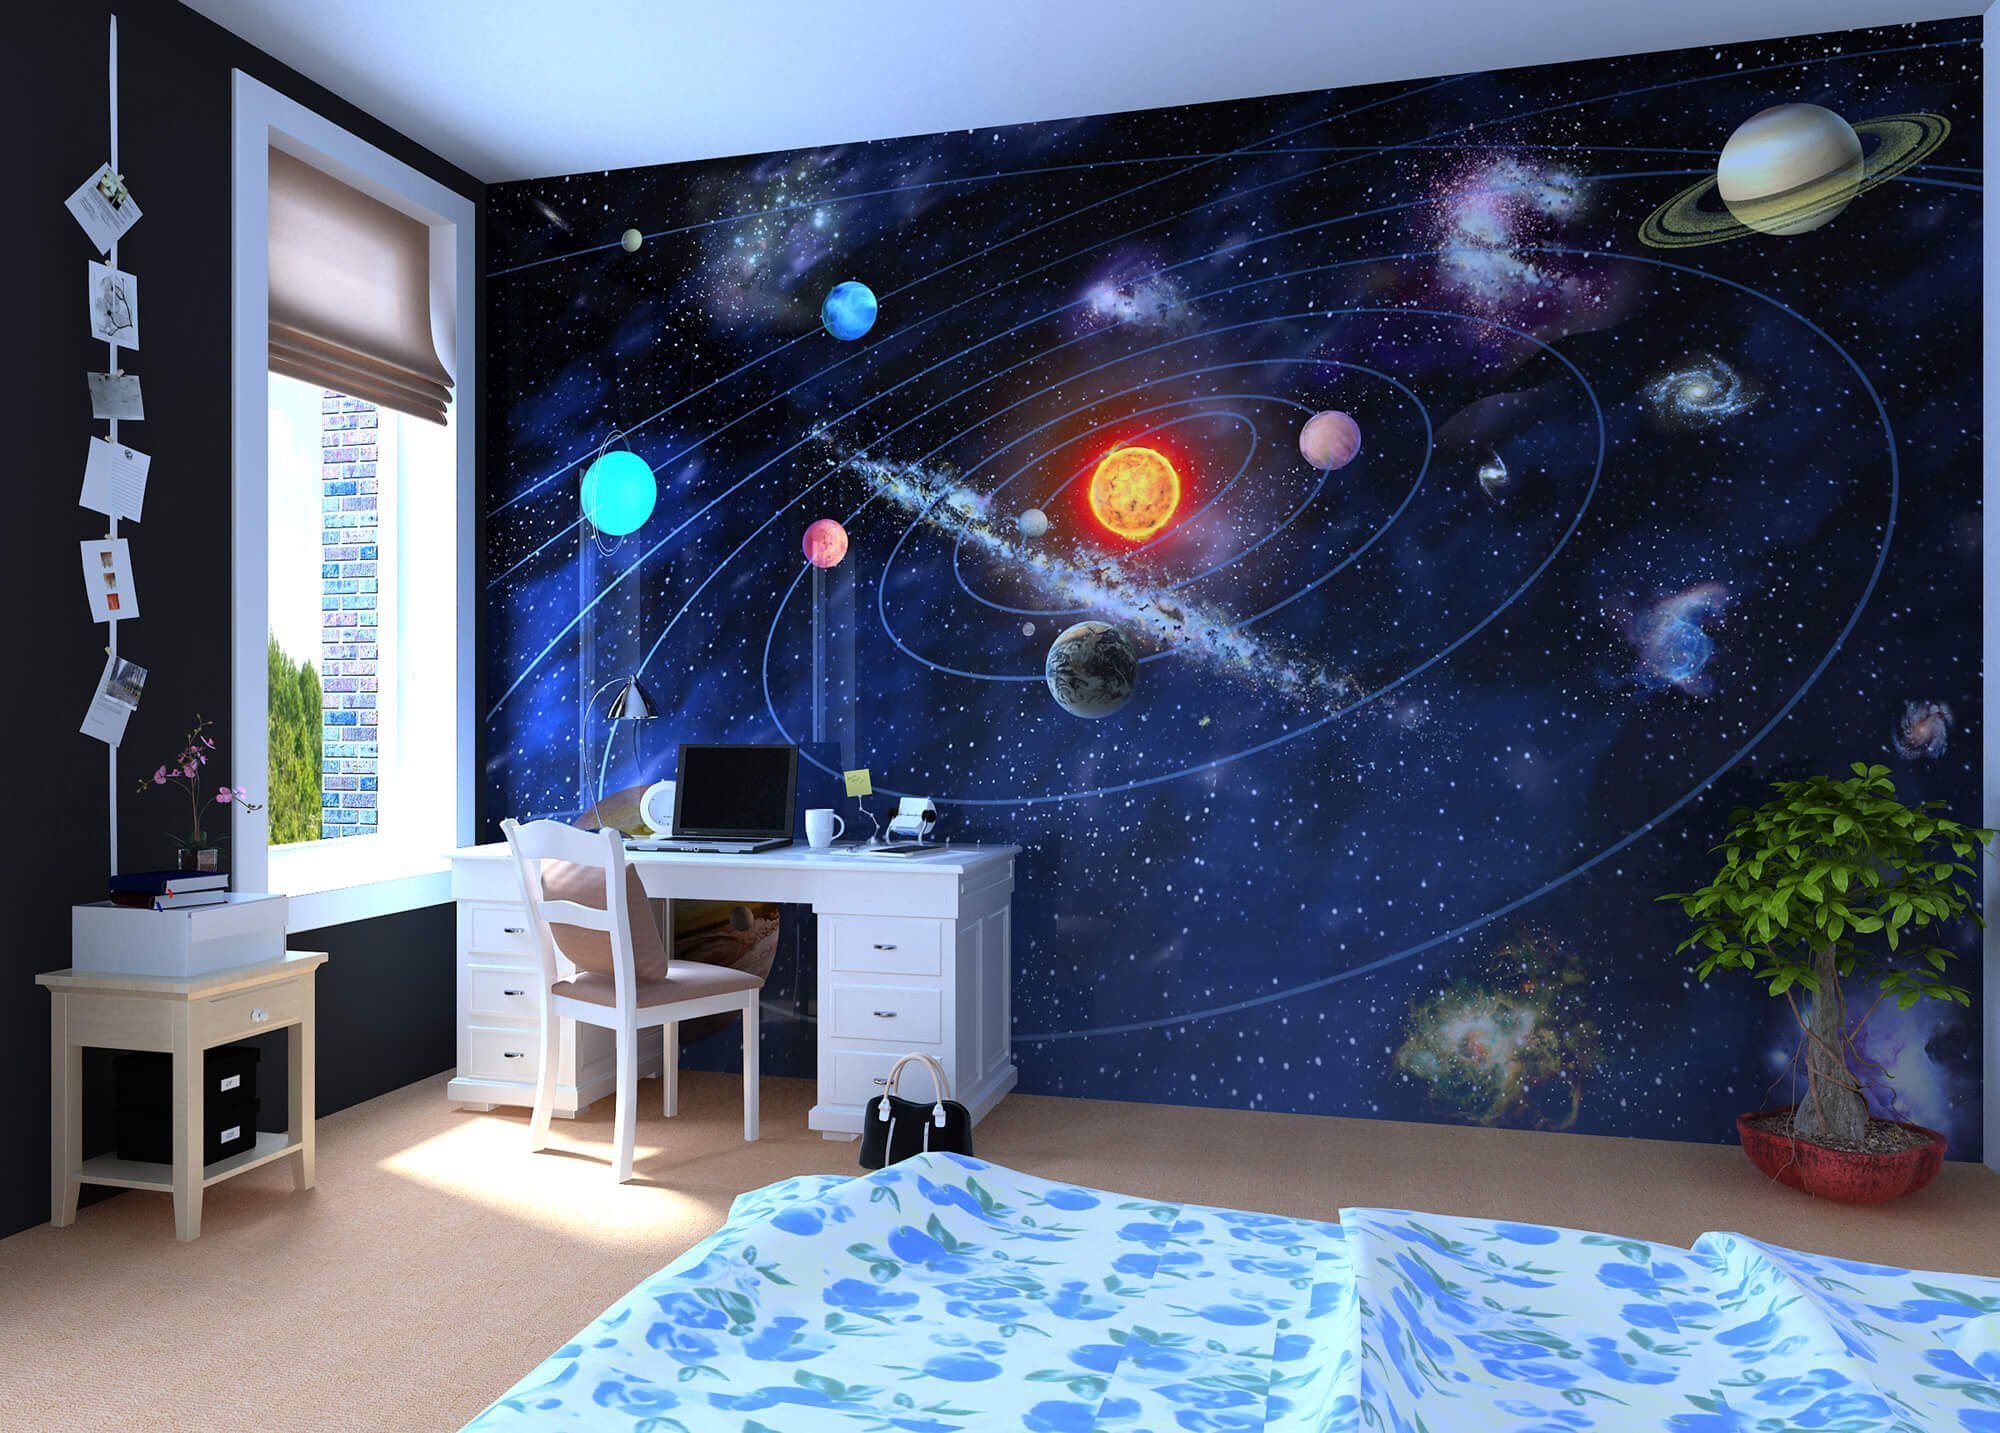 Space Room Decor for Kids Awesome these Educational Wall Ideas are Perfect for Kids